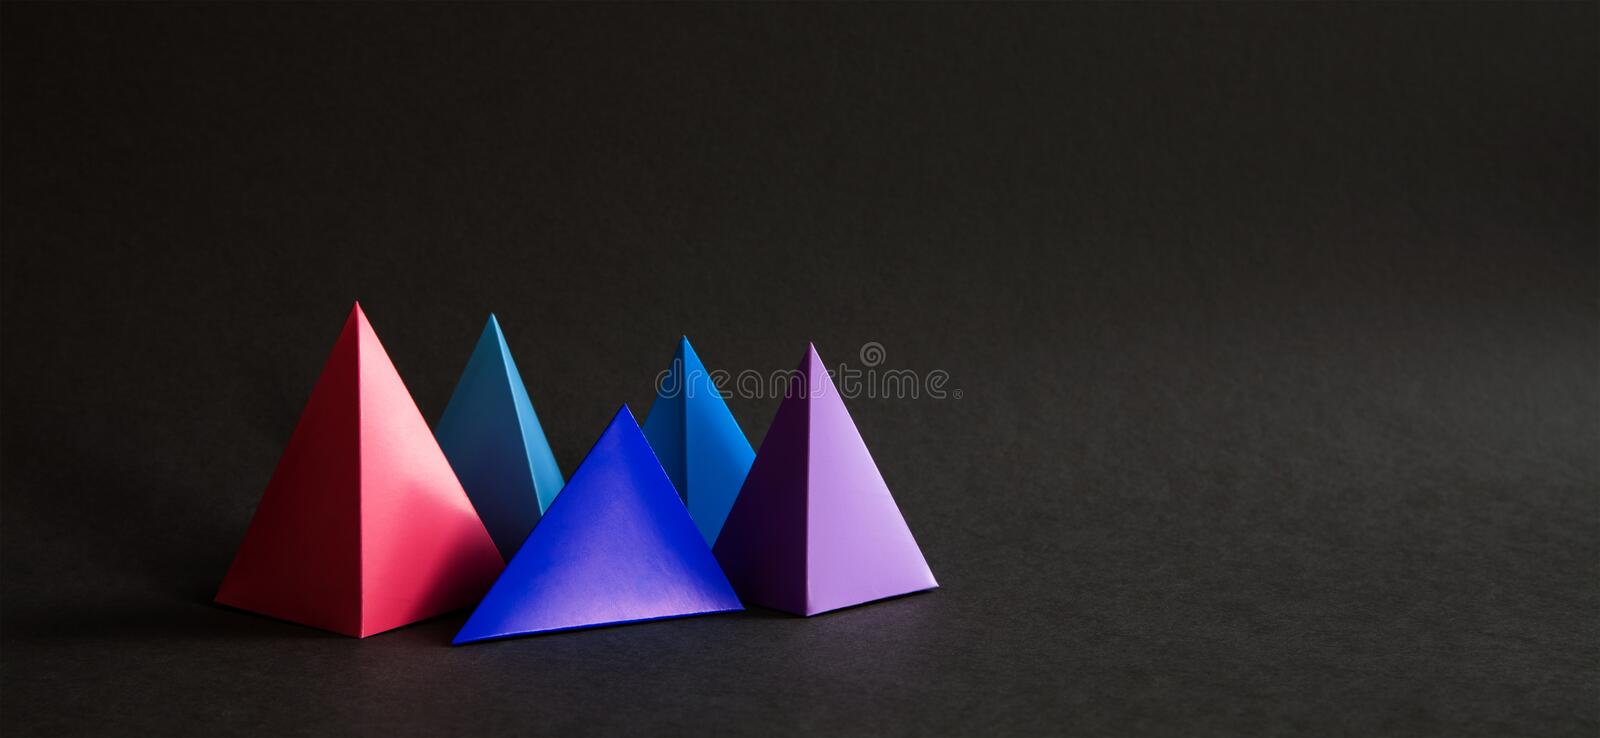 Abstract colorful geometrical composition. Three-dimensional prism pyramid objects on black paper background. Pink blue stock photography